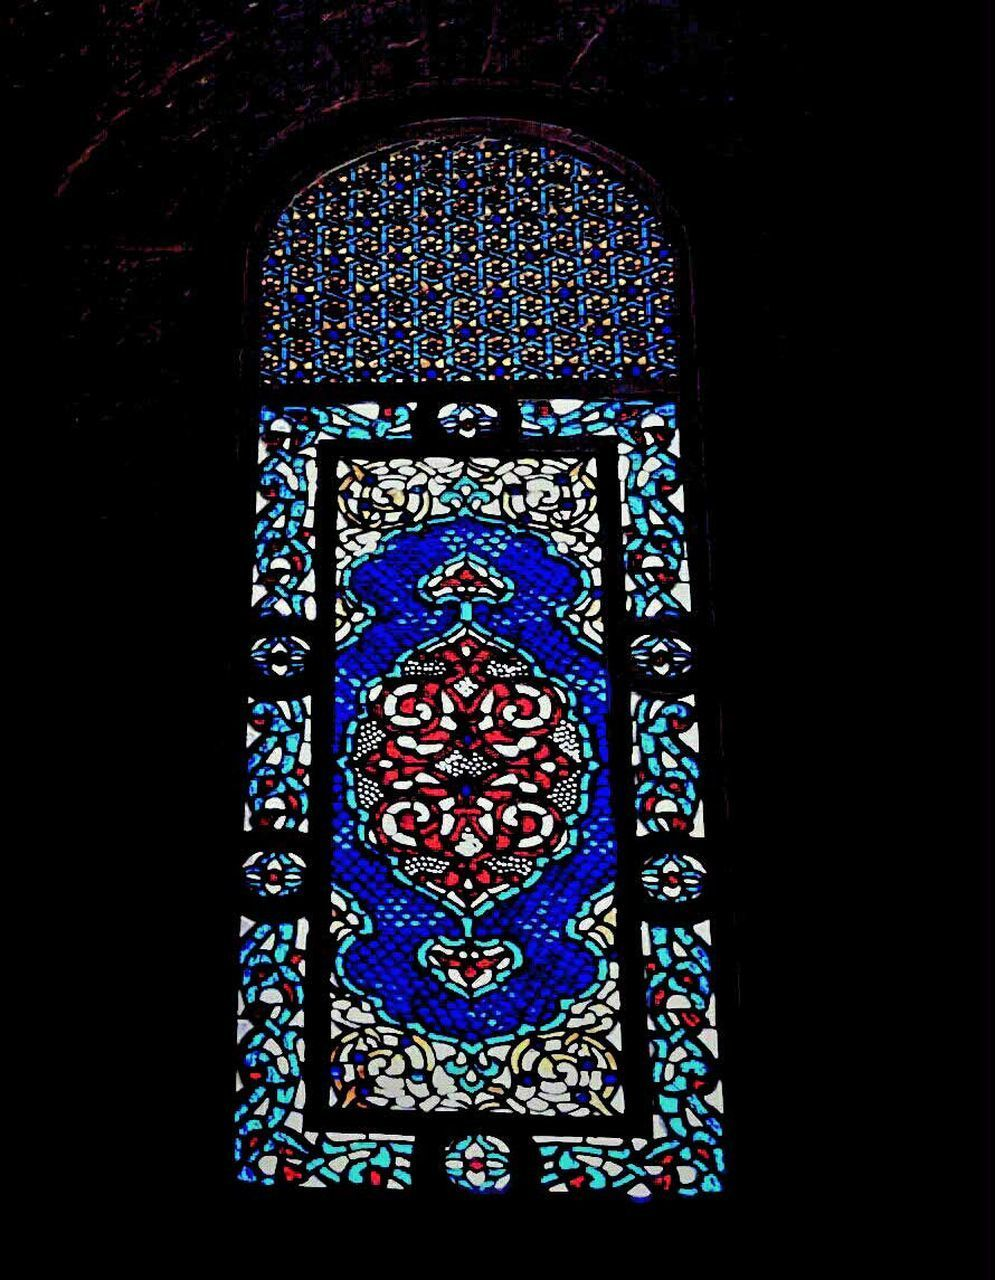 stained glass, window, design, art and craft, multi colored, pattern, place of worship, religion, spirituality, history, blue, indoors, no people, black background, close-up, day, architecture